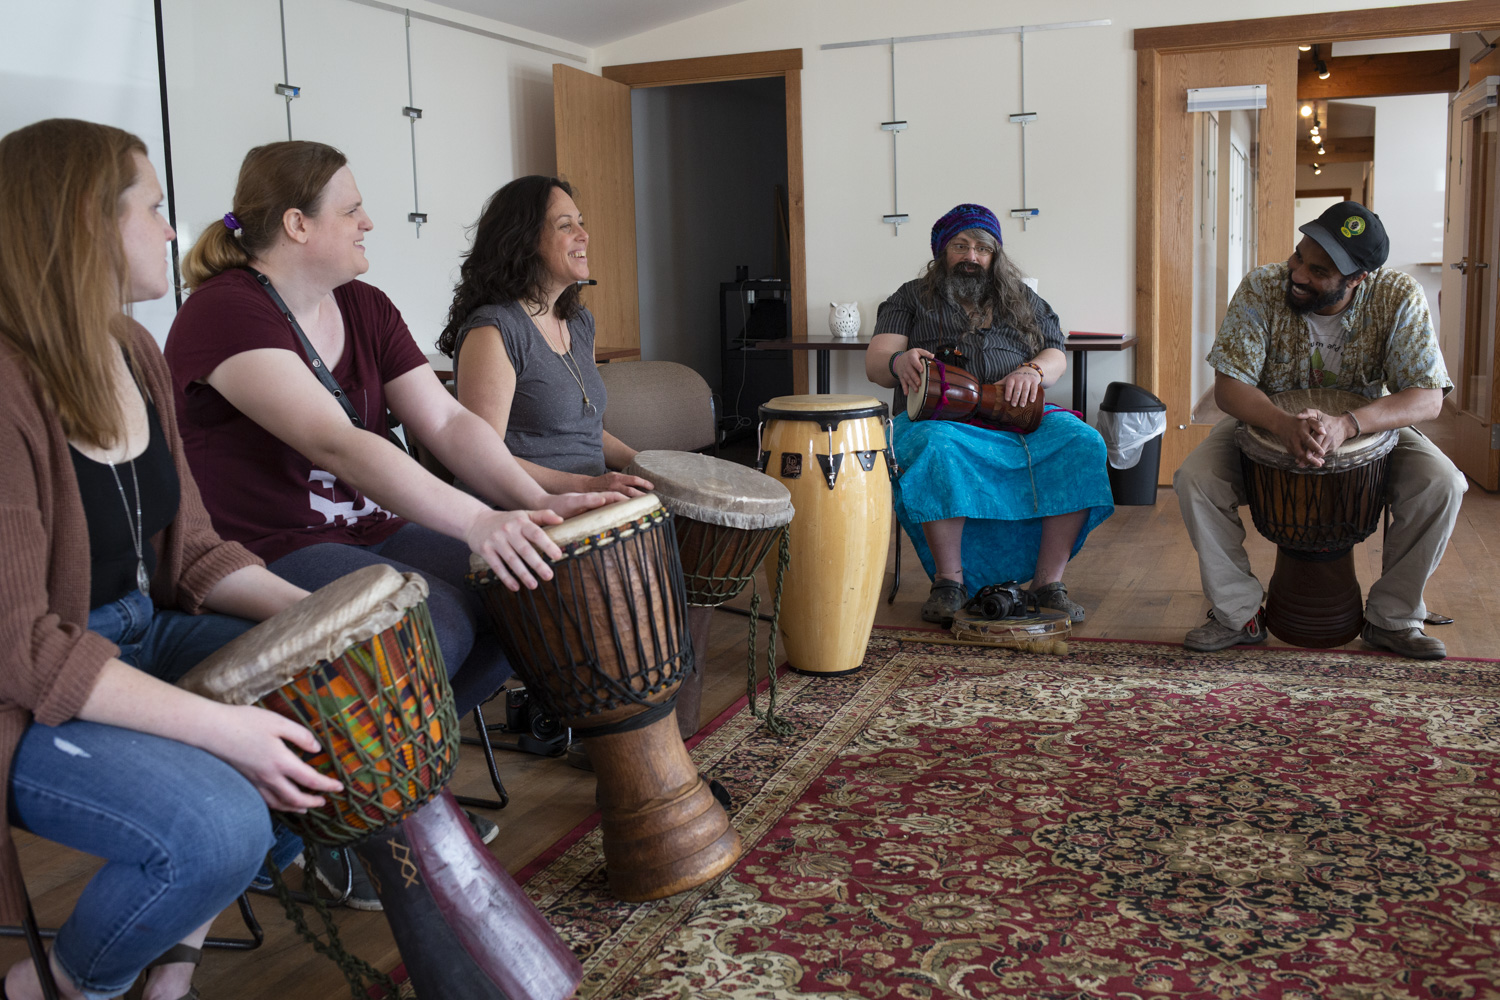 """Smith attends a drumming workshop at Athens Photo Project on April 10, 2019, nearly four months after her surgery. """"When you're feeling some kind of hurt and pain inside, playing music or writing poetry or stories, it lets the emotion out,"""" Smith said, adding """"especially music because it can tune into your soul."""""""